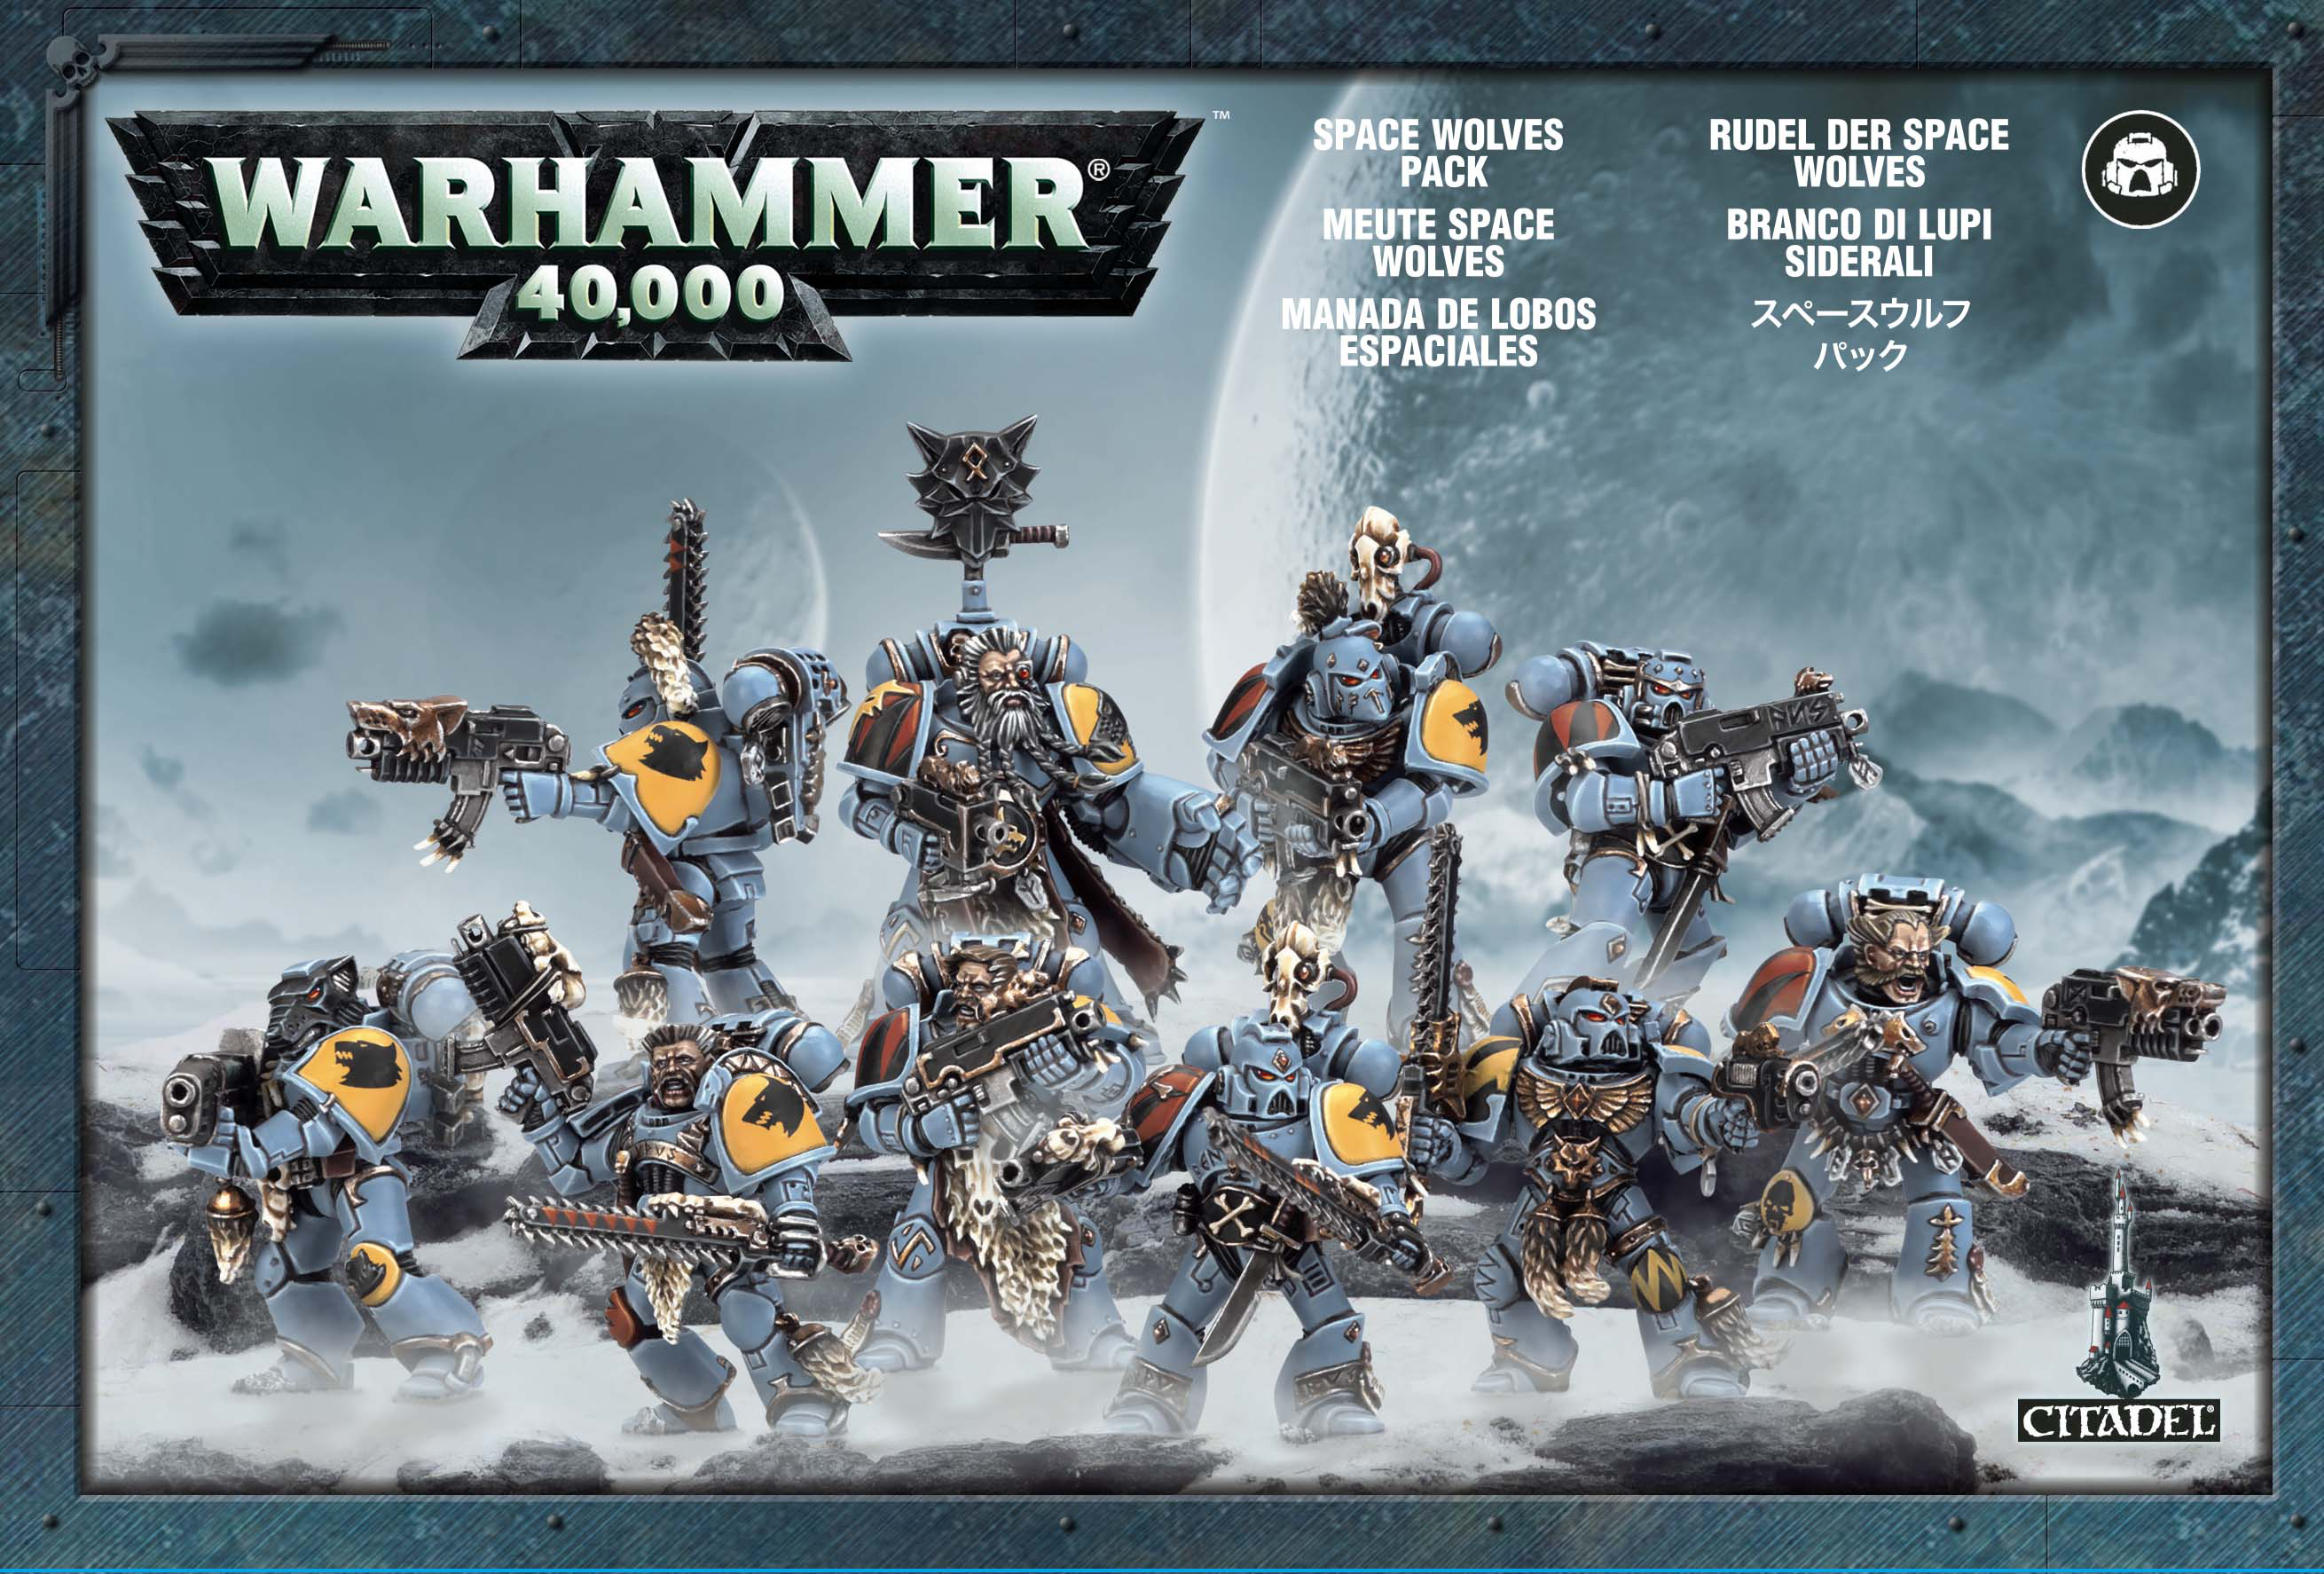 Warhammer: Space Wolves Pack imagine